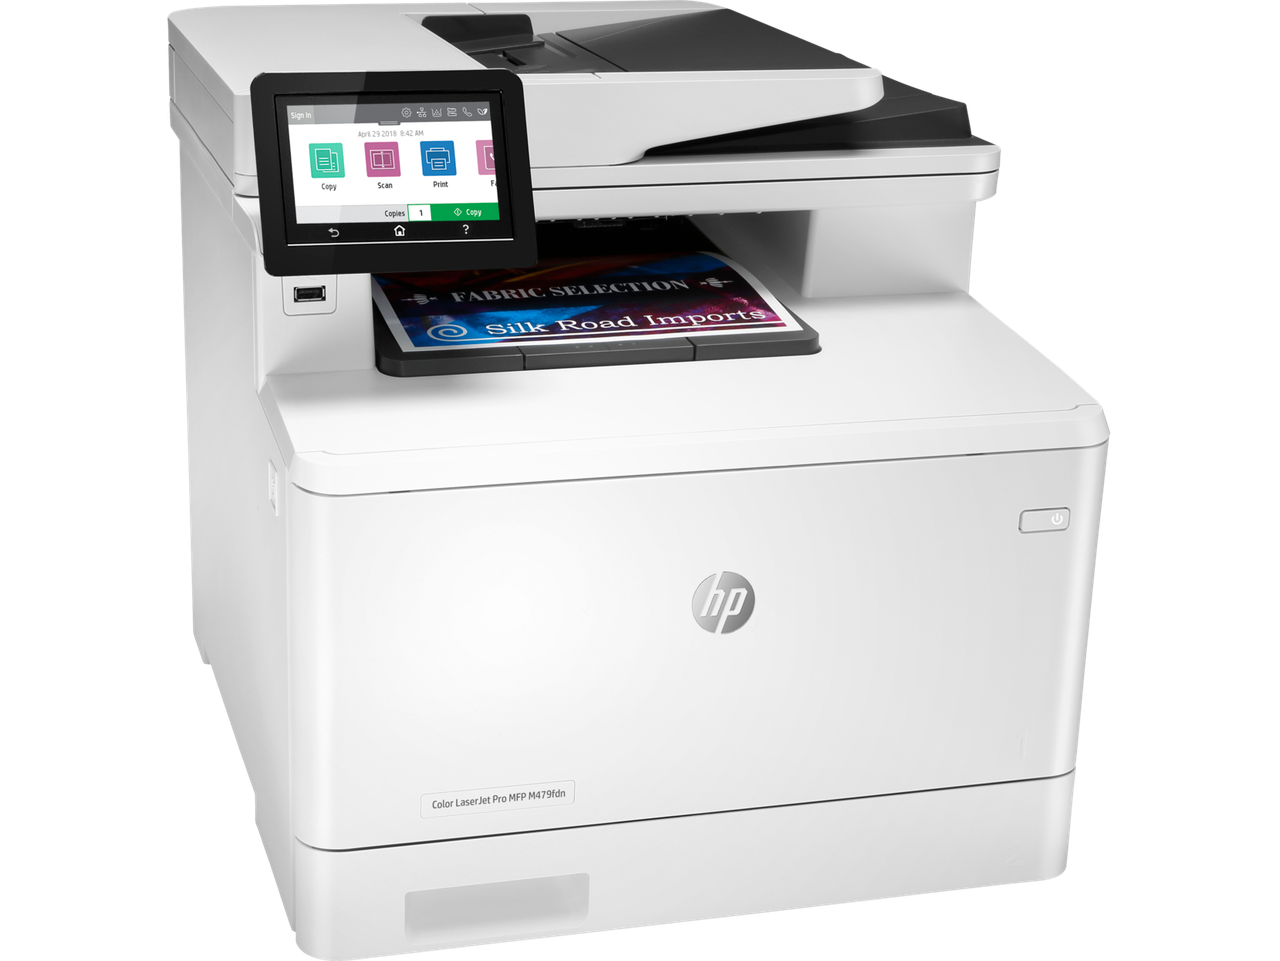 МФУ HP W1A79A HP Color LaserJet Pro MFP M479fdn Prntr (A4) , Printer/Scanner/Copier/Fax/ADF, 600 dpi, 27 ppm,